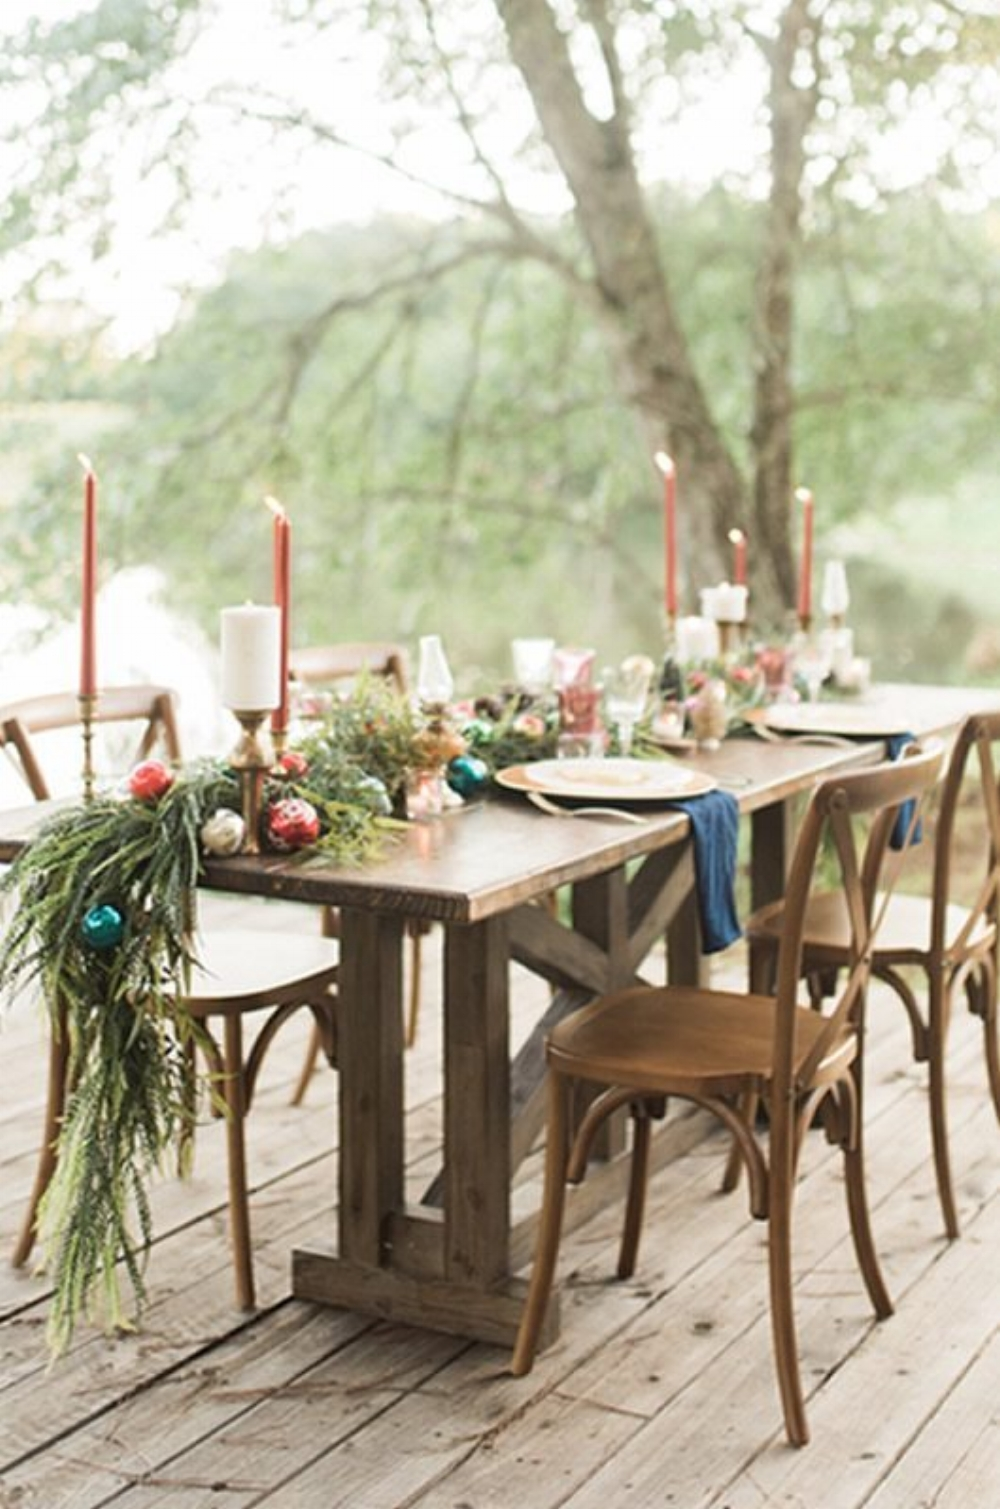 Featured onSouthern Bride -